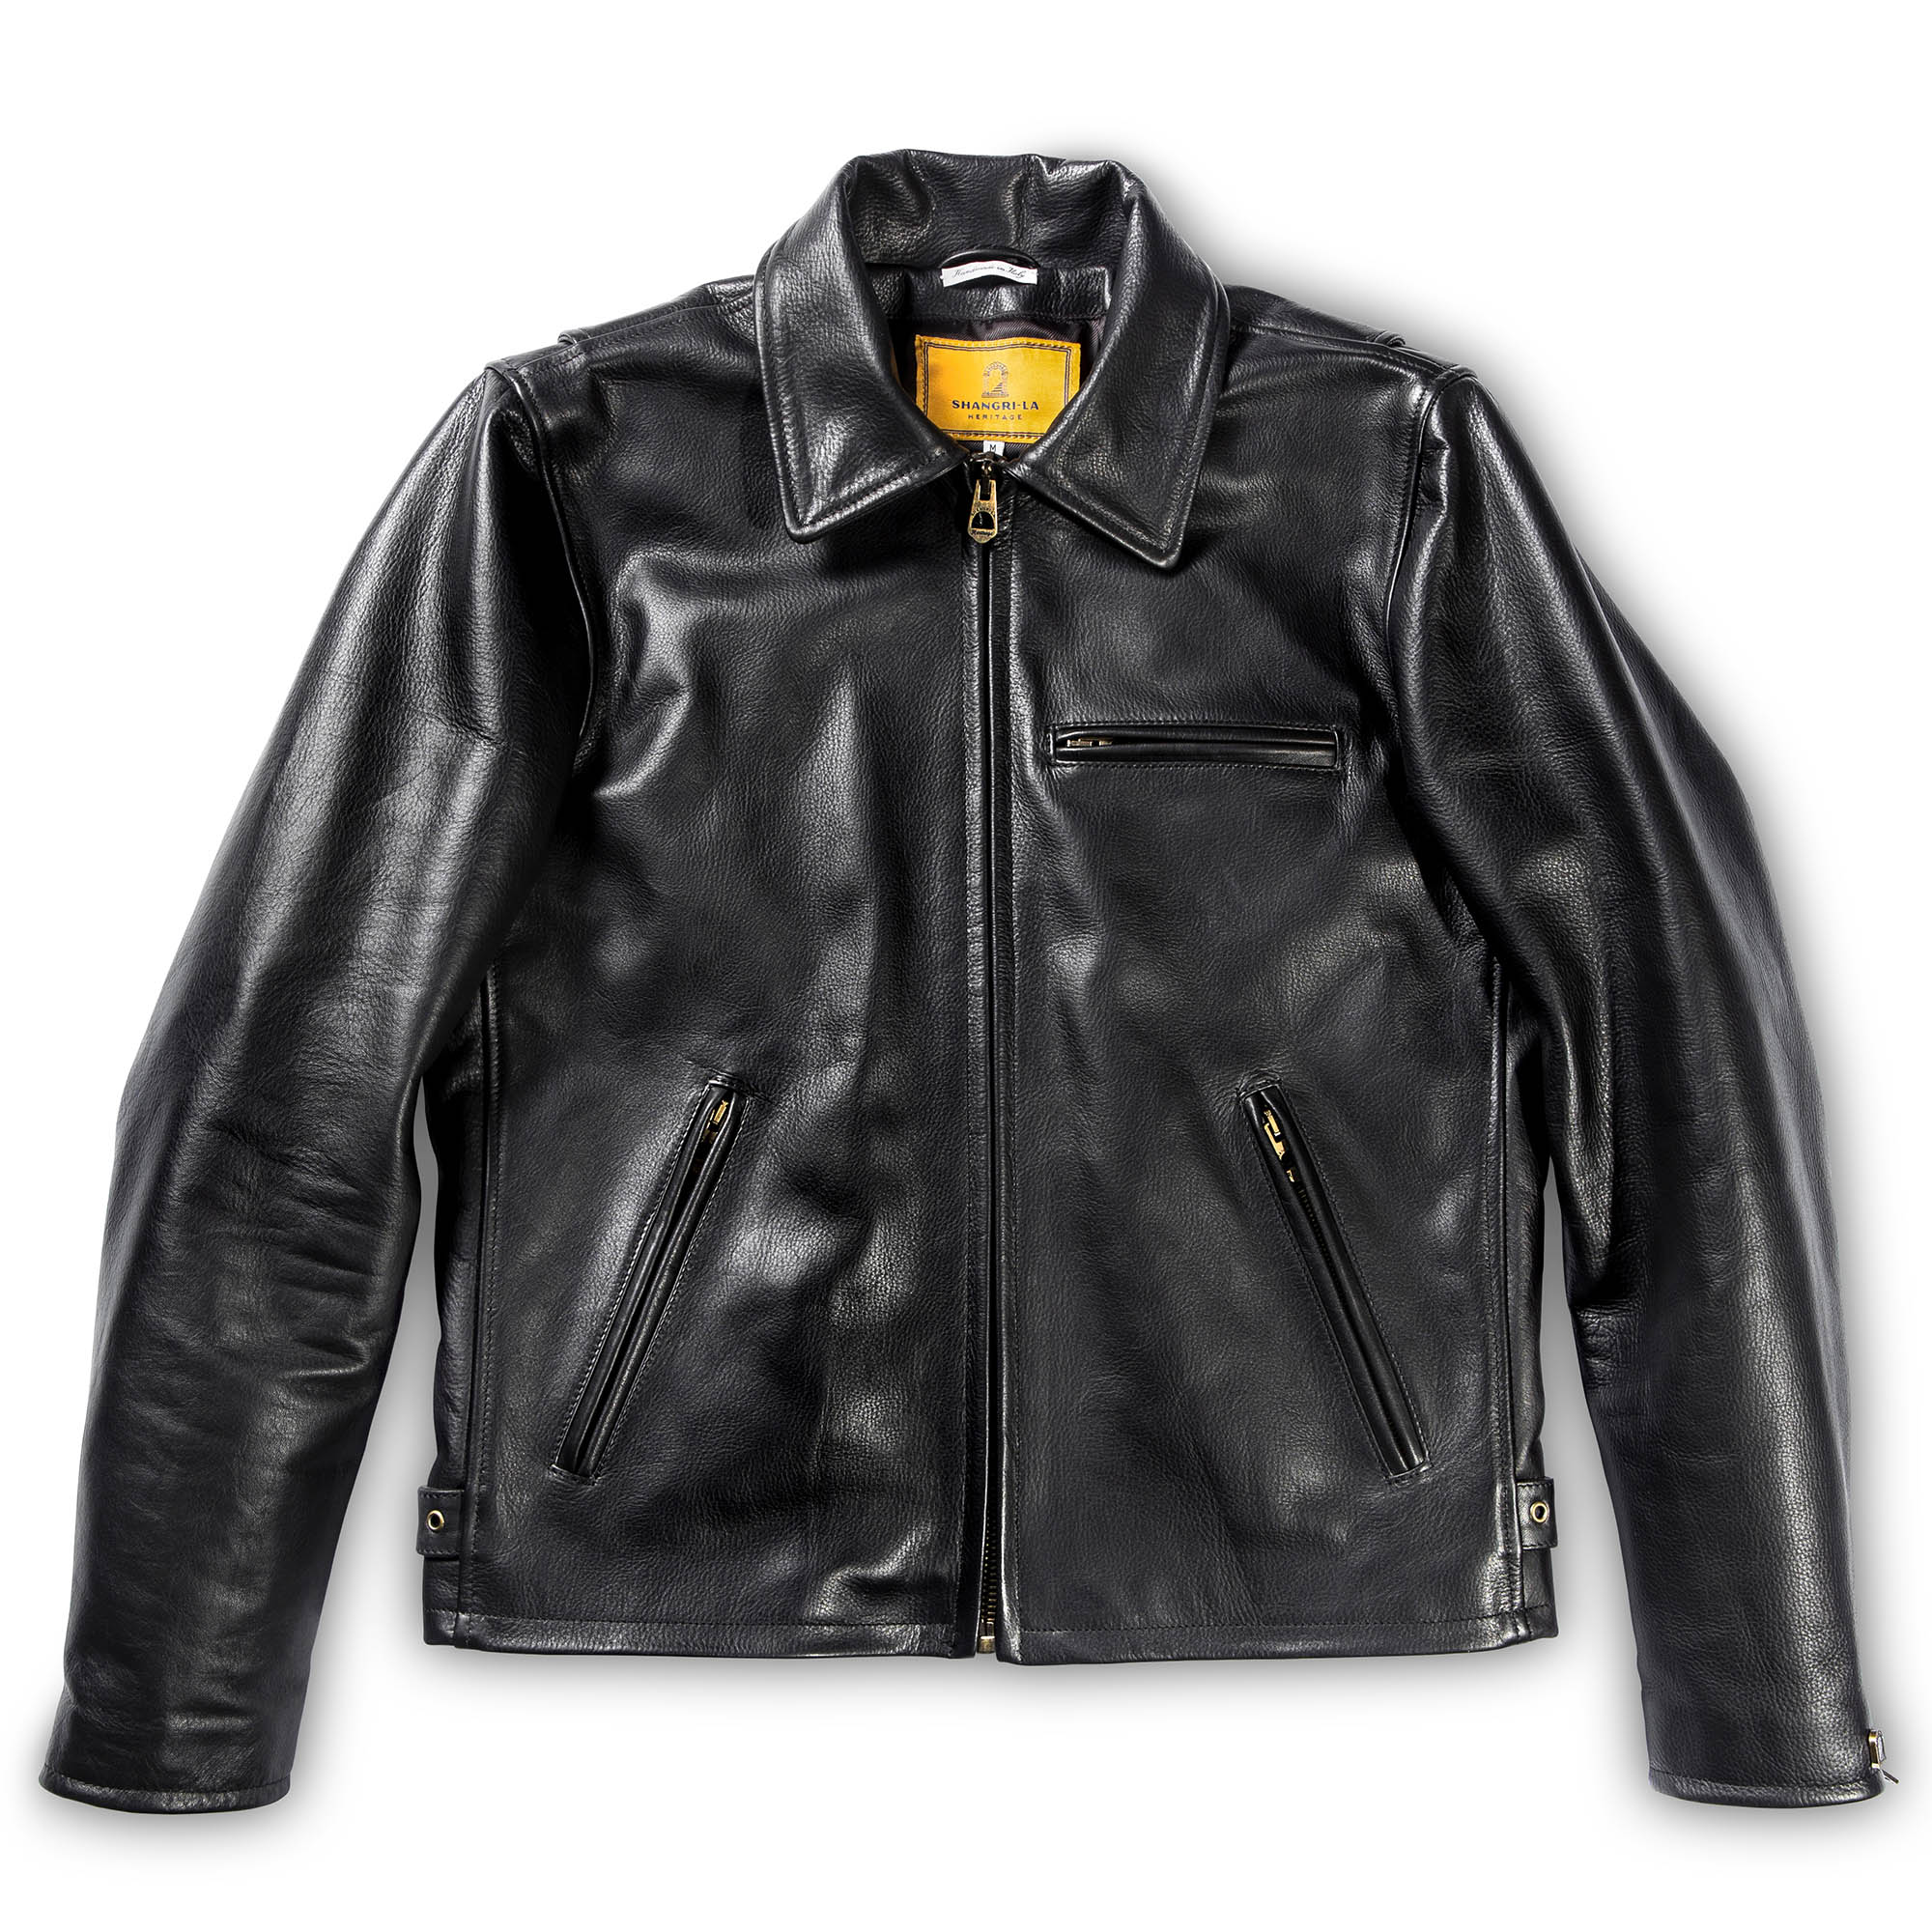 21 Best leather images in 2015 | Jackets, Leather, Fashion